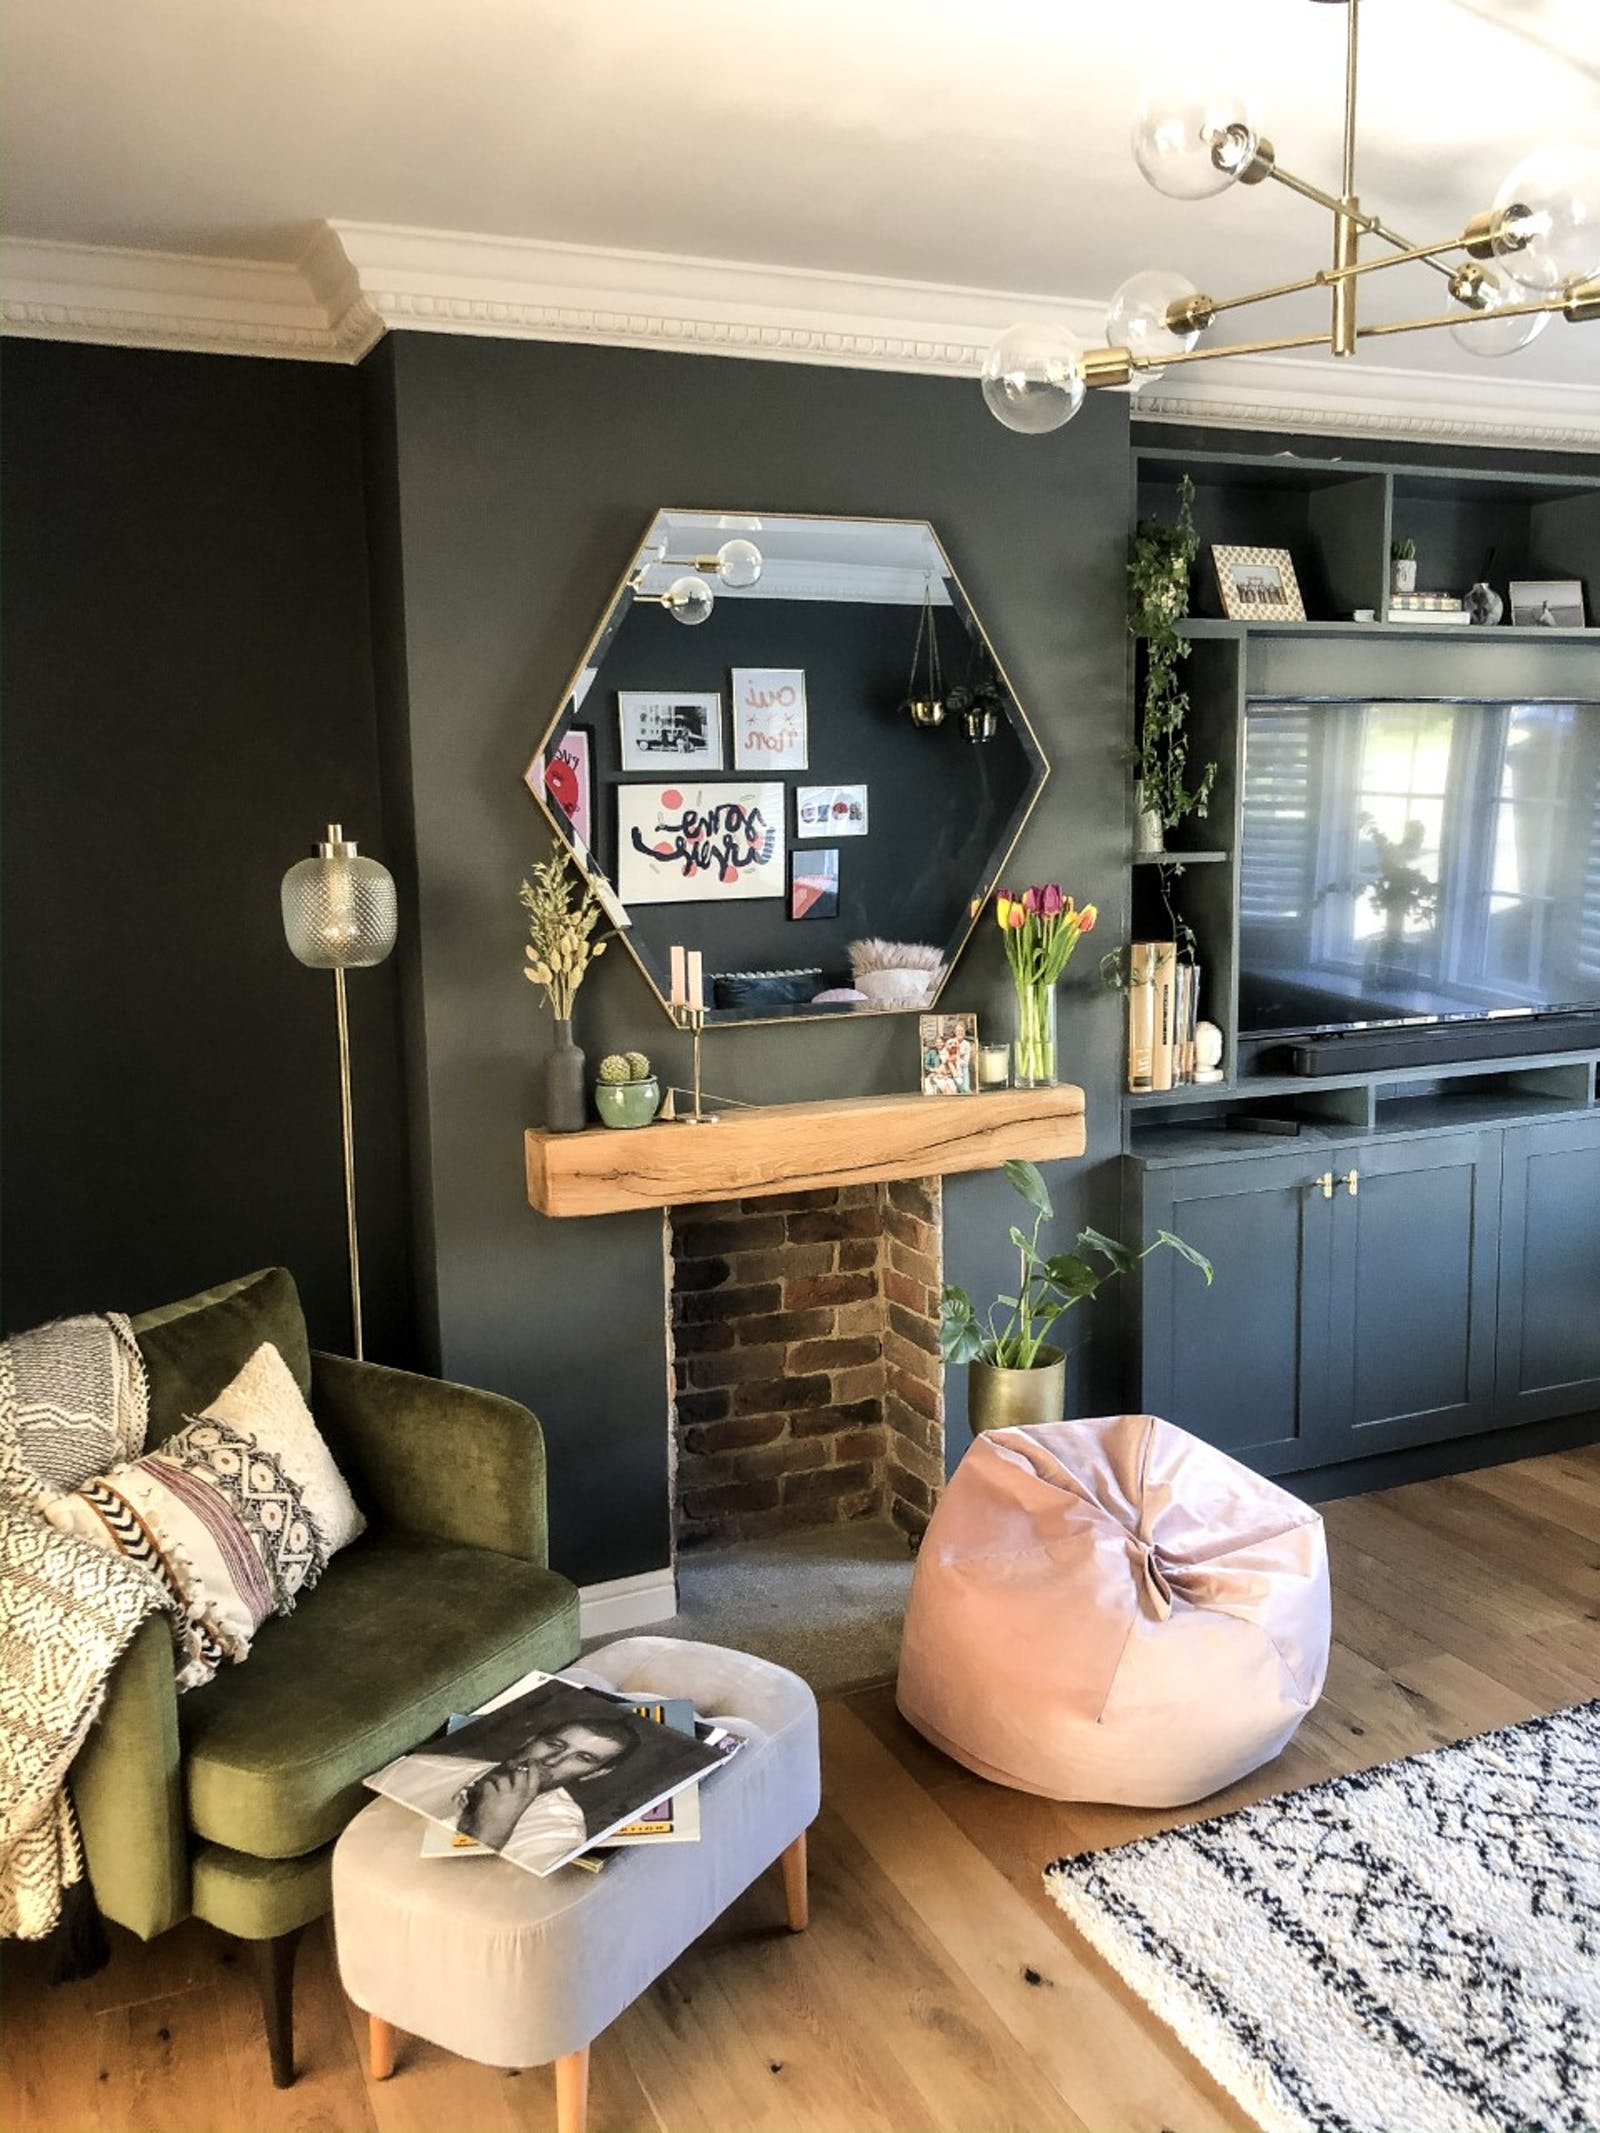 Living room painted in dark teal with armchair and soft furnishings